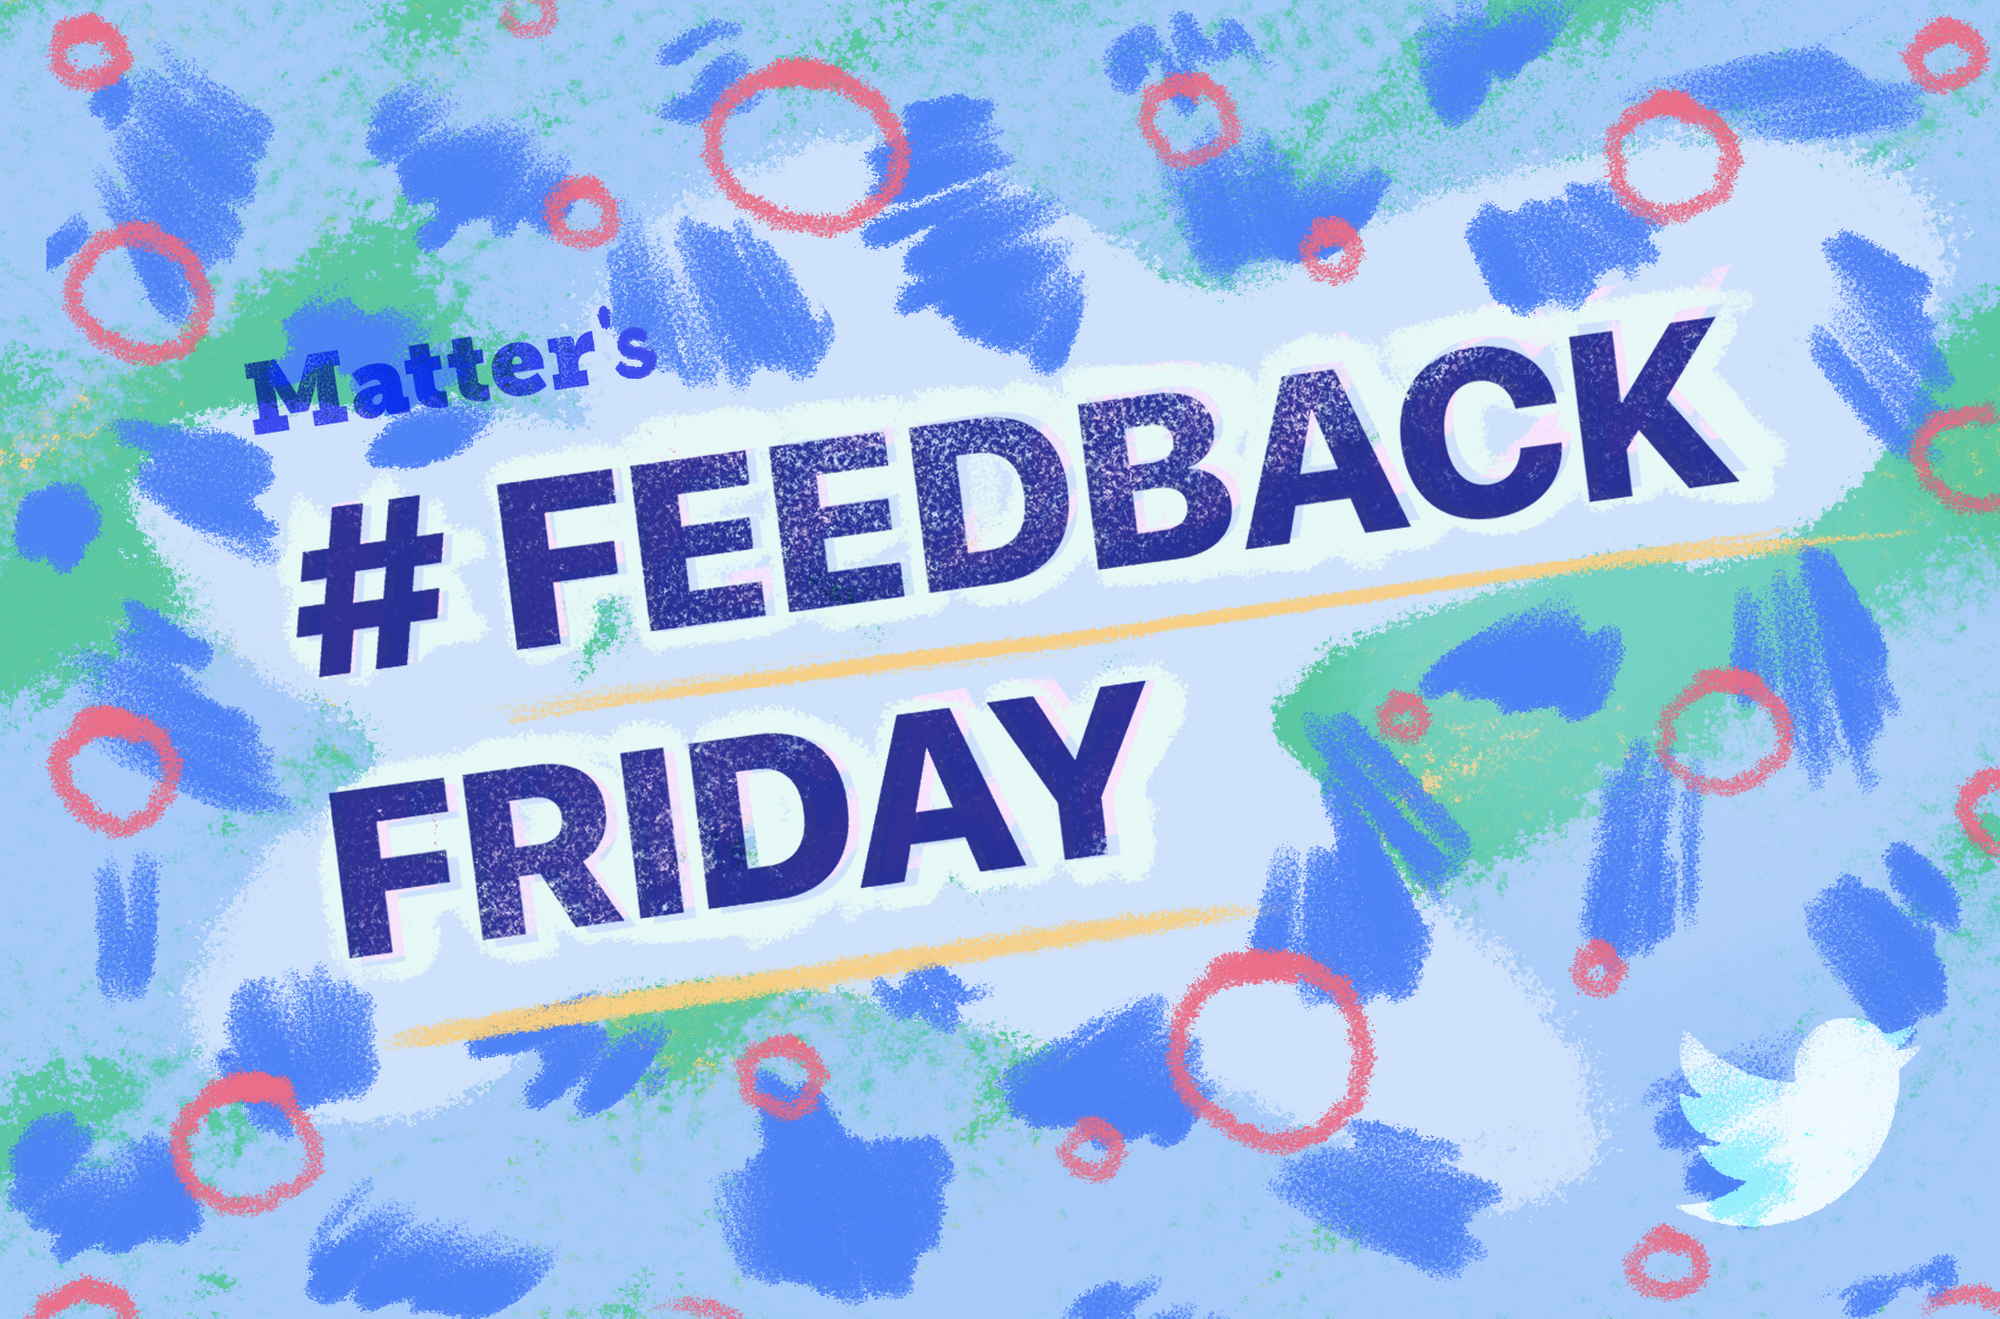 Introducing #FeedbackFriday